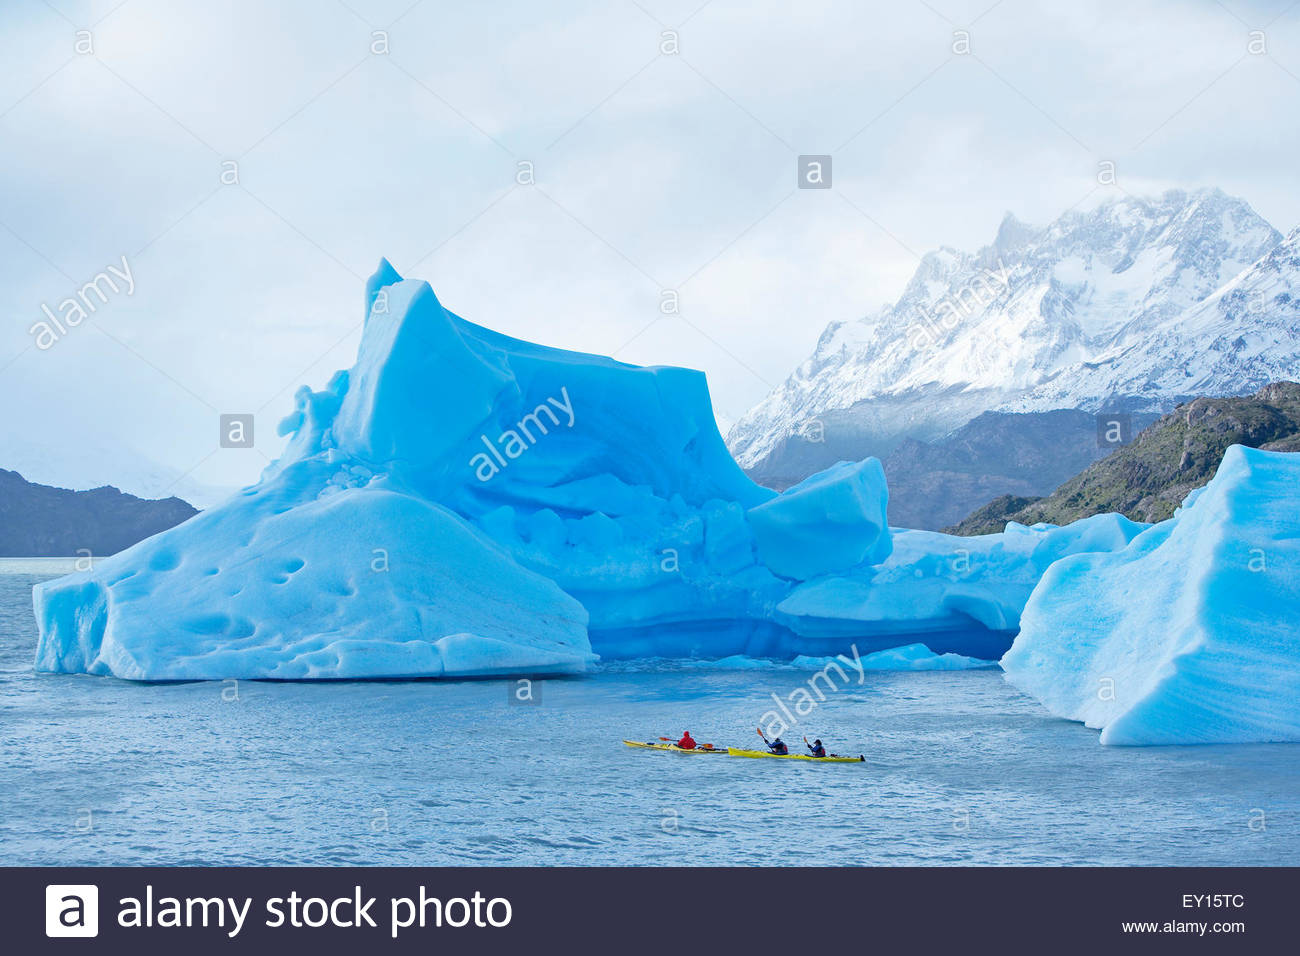 Kayakers navigating icebergs on lake, Torres del Paine National Park,Patagonian Andes, Patagonia, Chile, - Stock Image